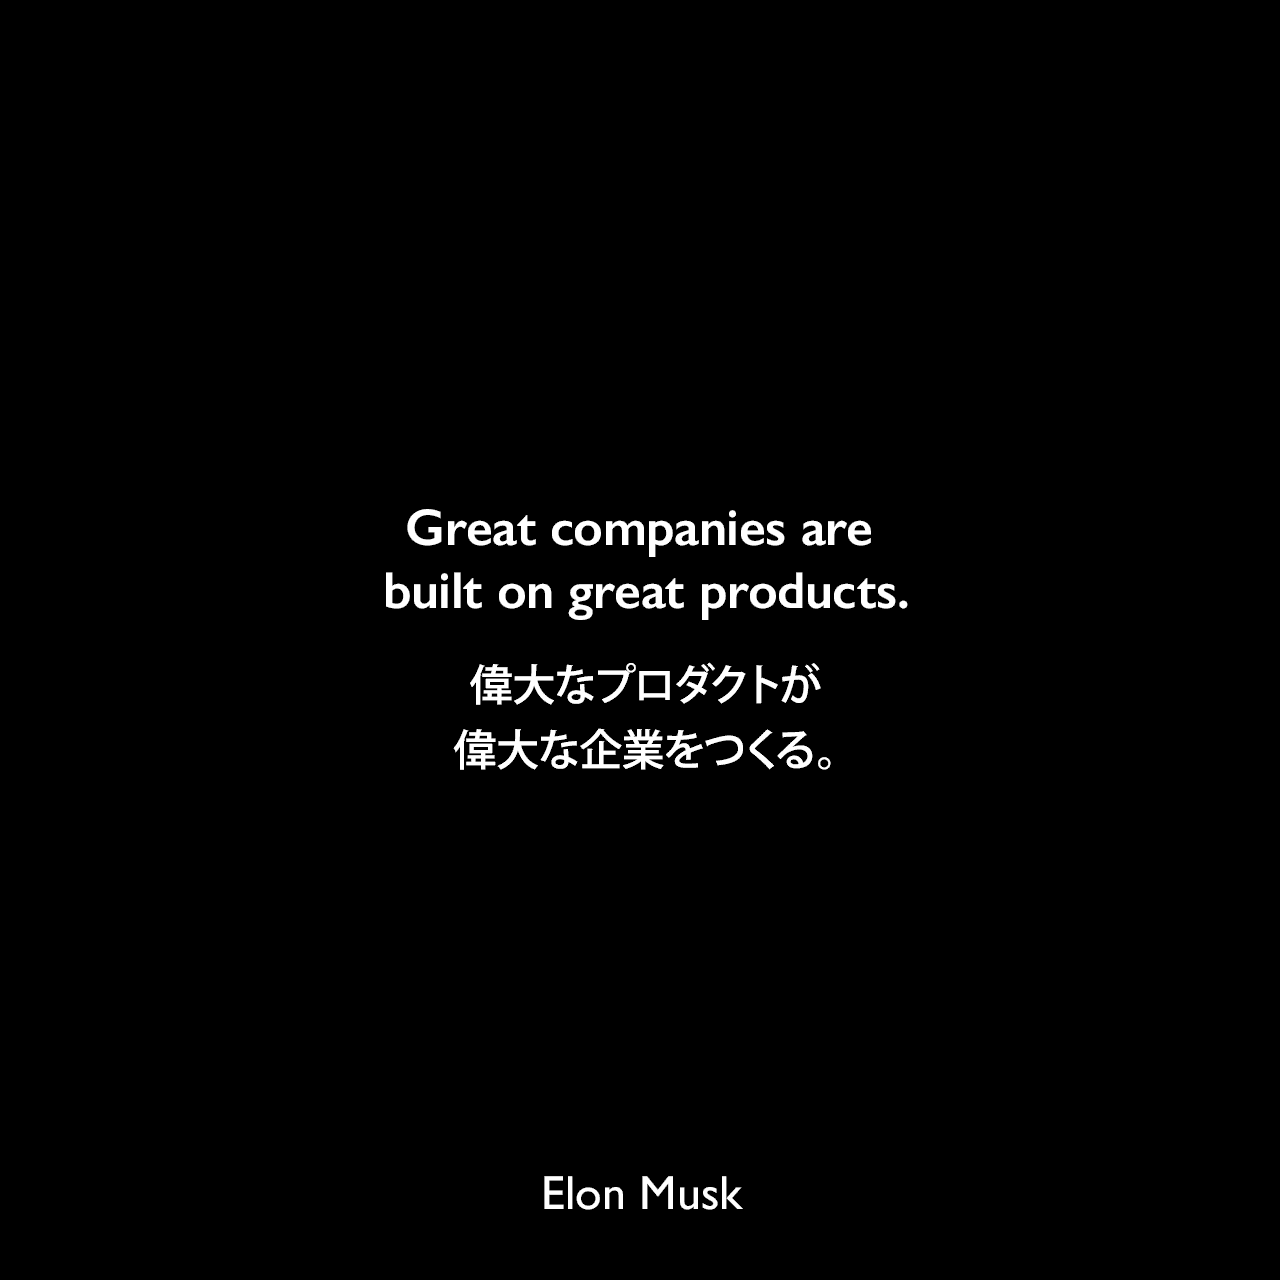 Great companies are built on great products.偉大なプロダクトが偉大な企業をつくる。Elon Musk